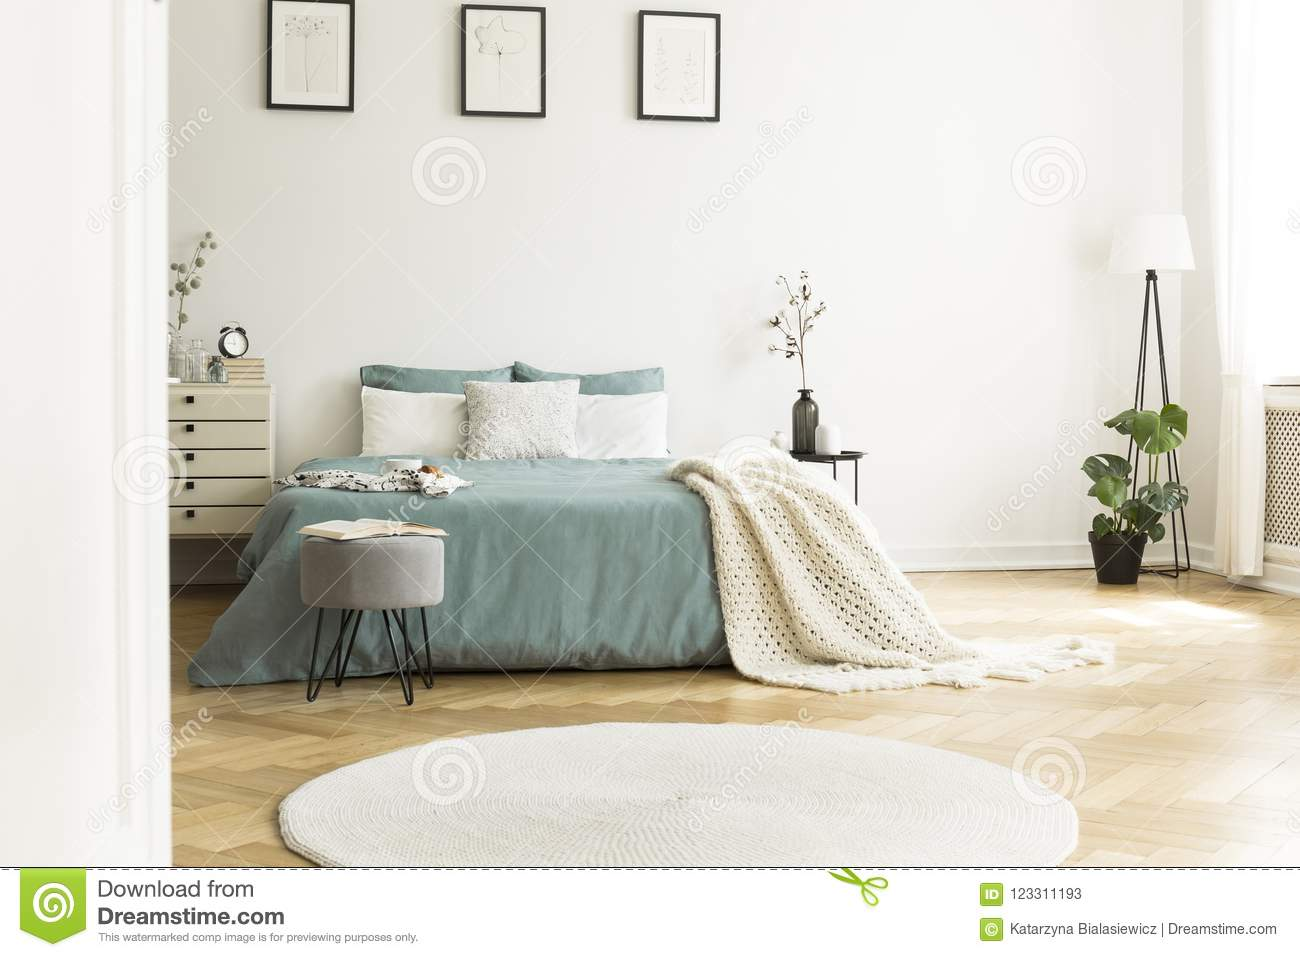 White Round Rug In Front Of Green Bed With Blanket In